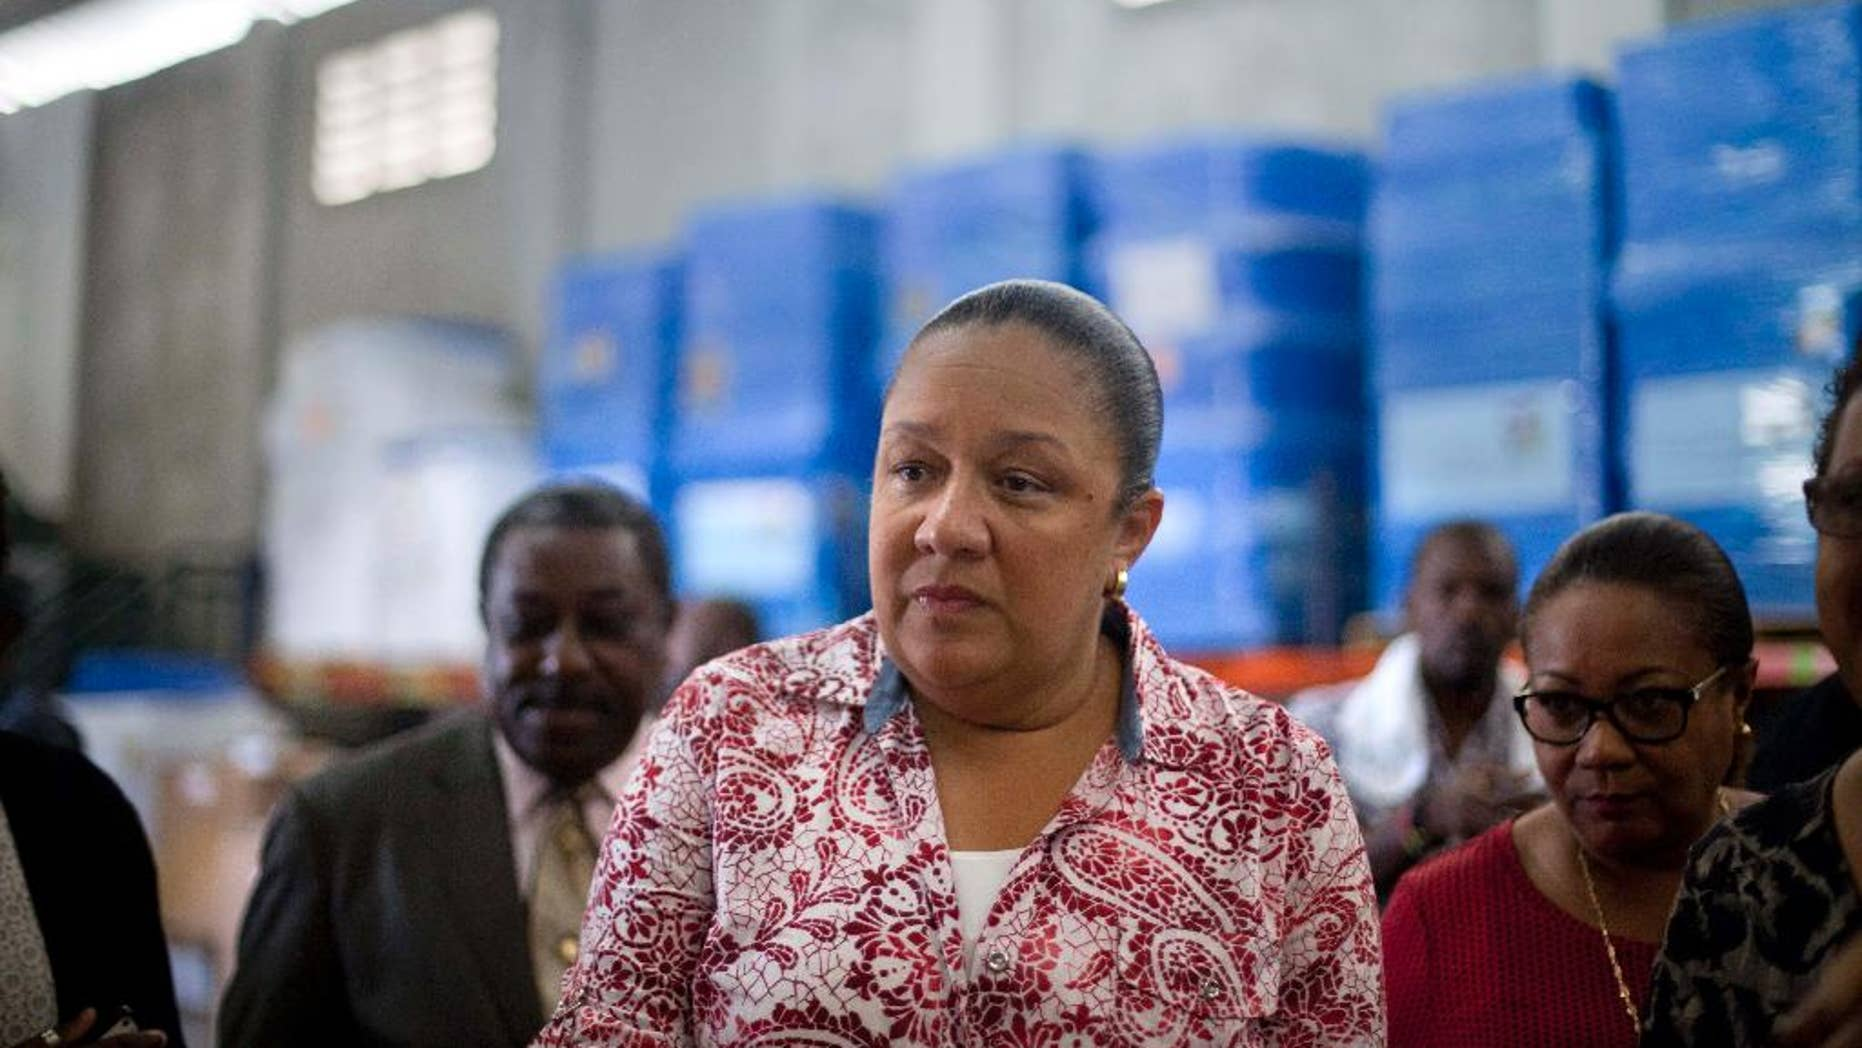 FILE - In this Sept. 10, 2014, file photo, Haiti's first lady Sophia Martelly visits a warehouse housing a donation of kits to treat chikungunya, in the Cite Soleil slum, in Port-au-Prince, Haiti.  An elections committee in Haiti has the rejected first lady's bid to run for Senate. Electoral council spokesman Richardson Dumel said Wednesday, May 13, 2015, that the committee would not allow the wife of President Michel Martelly to pursue her candidacy. He did not provide details about the decision. (AP Photo/Dieu Nalio Chery, File)